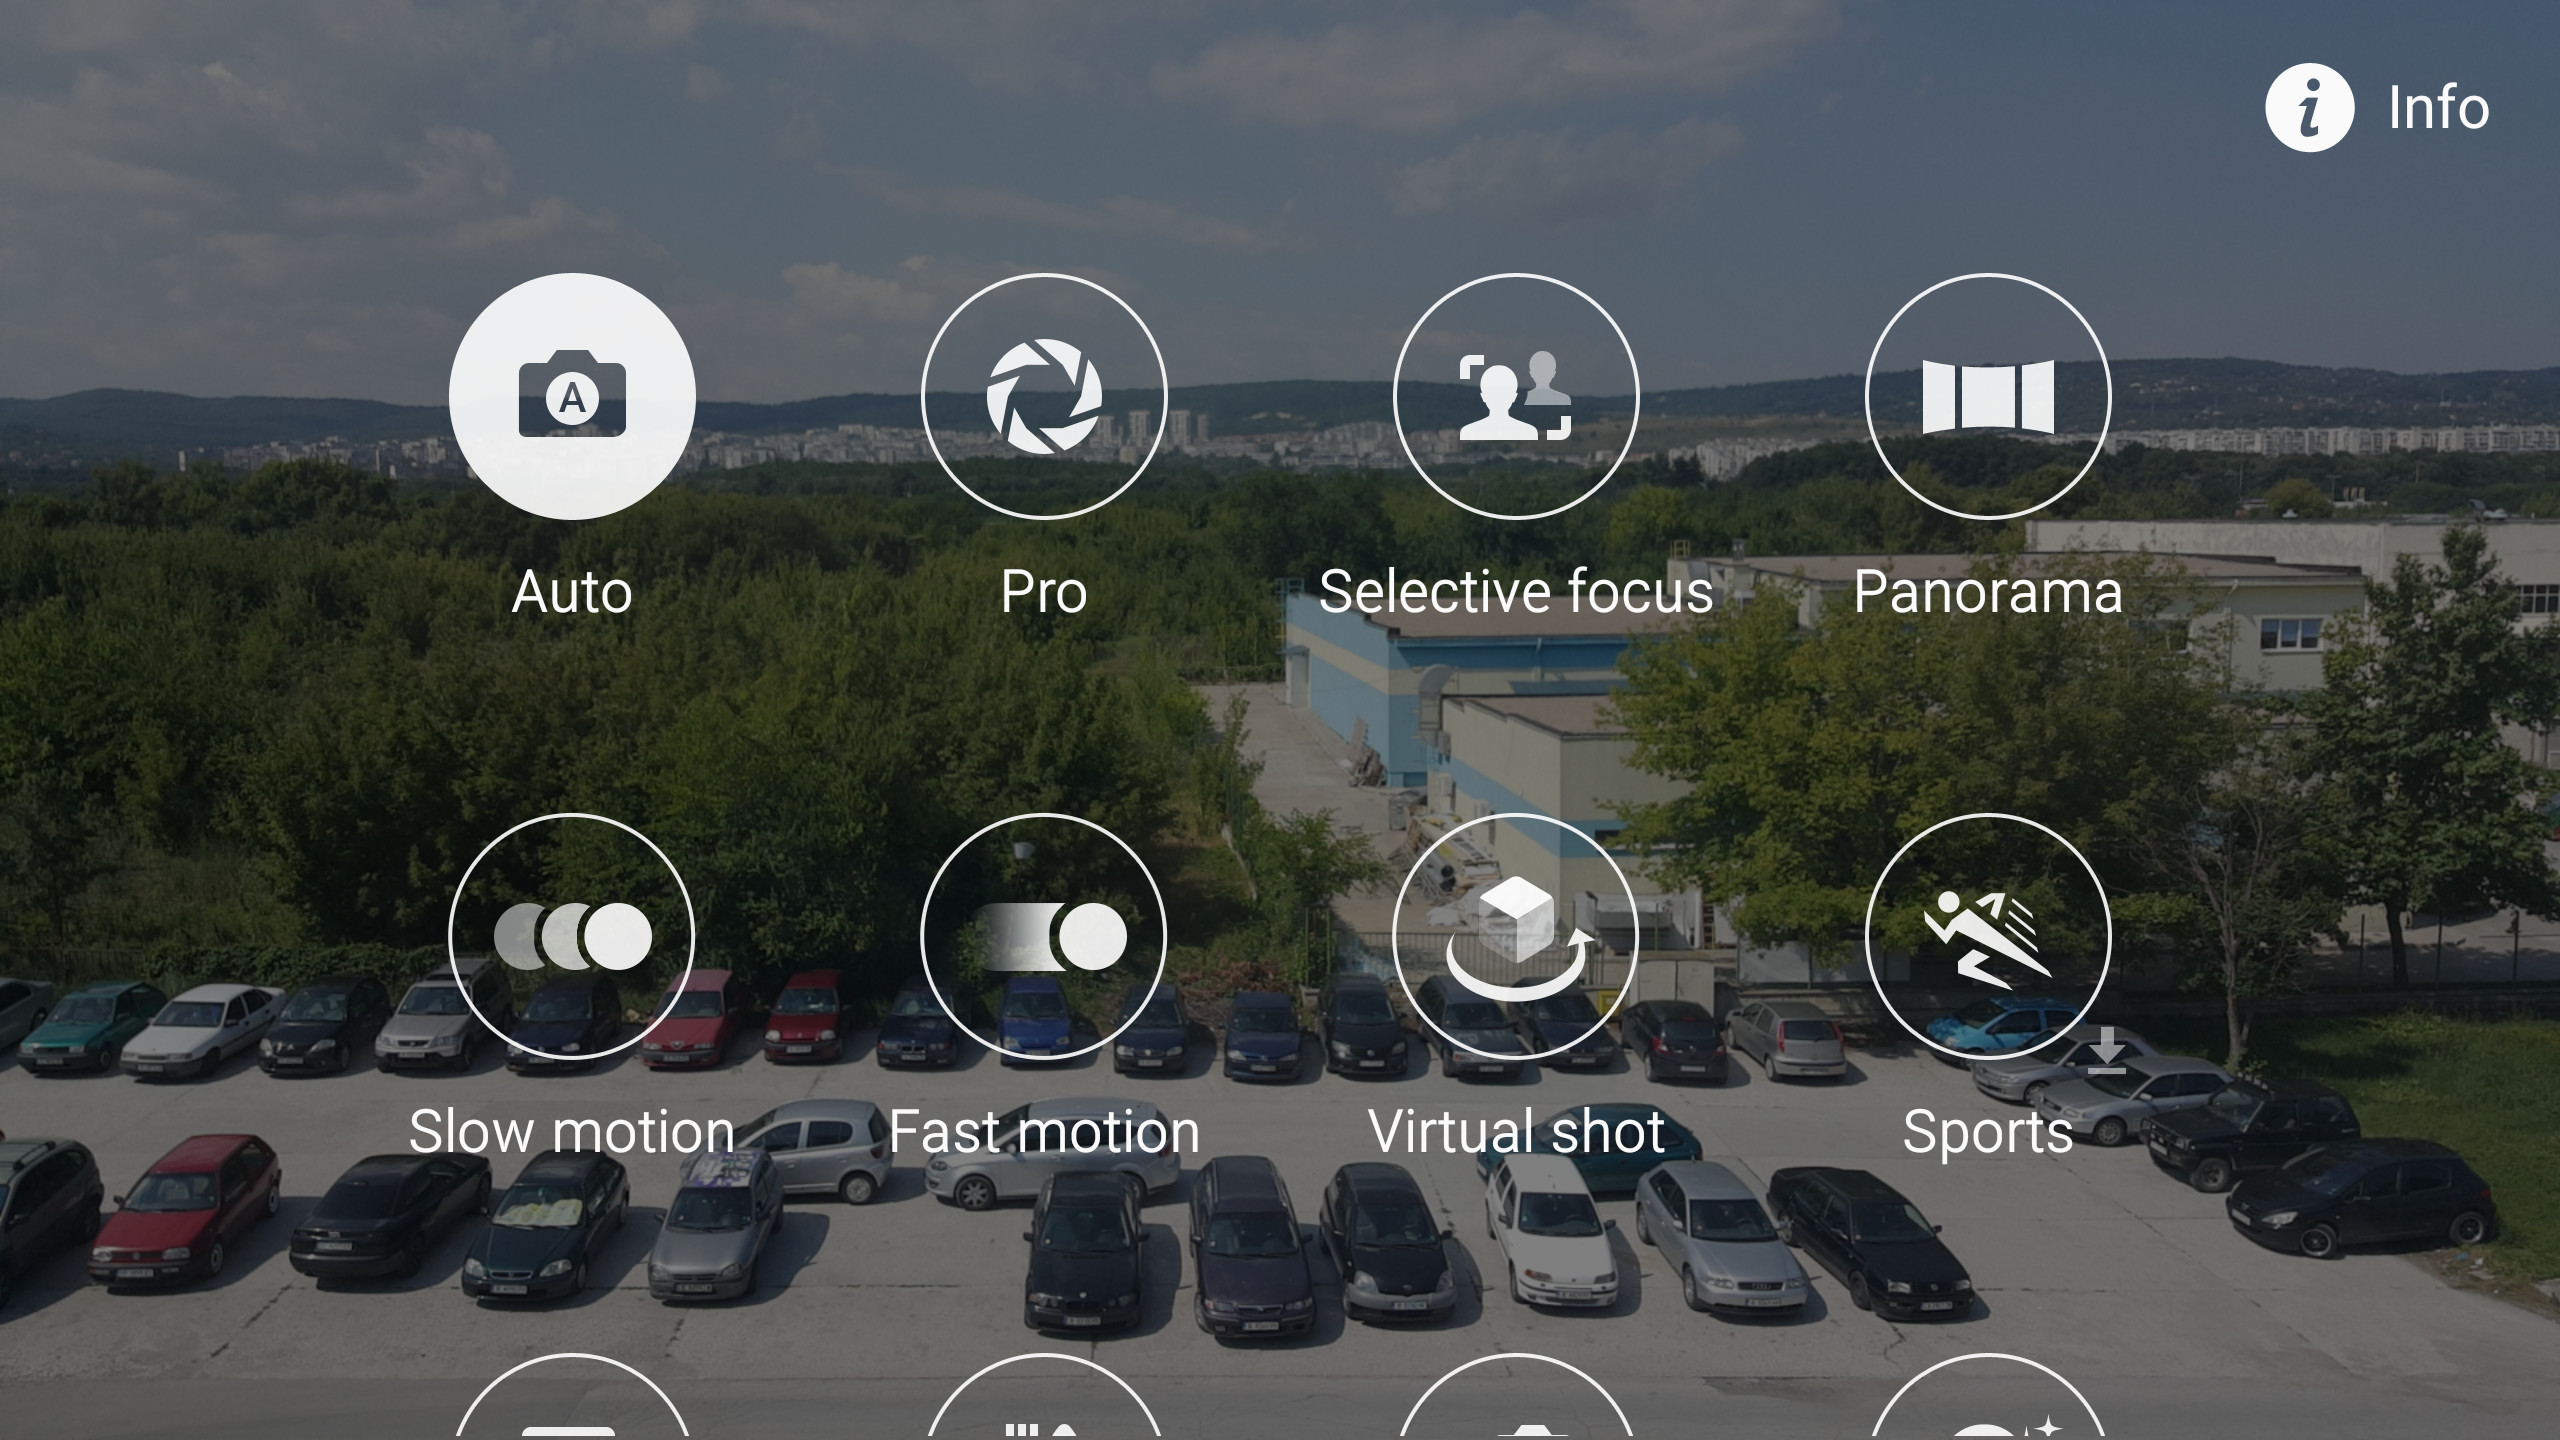 Samsung-Galaxy-S6-slo-mo-also-easy-to-find